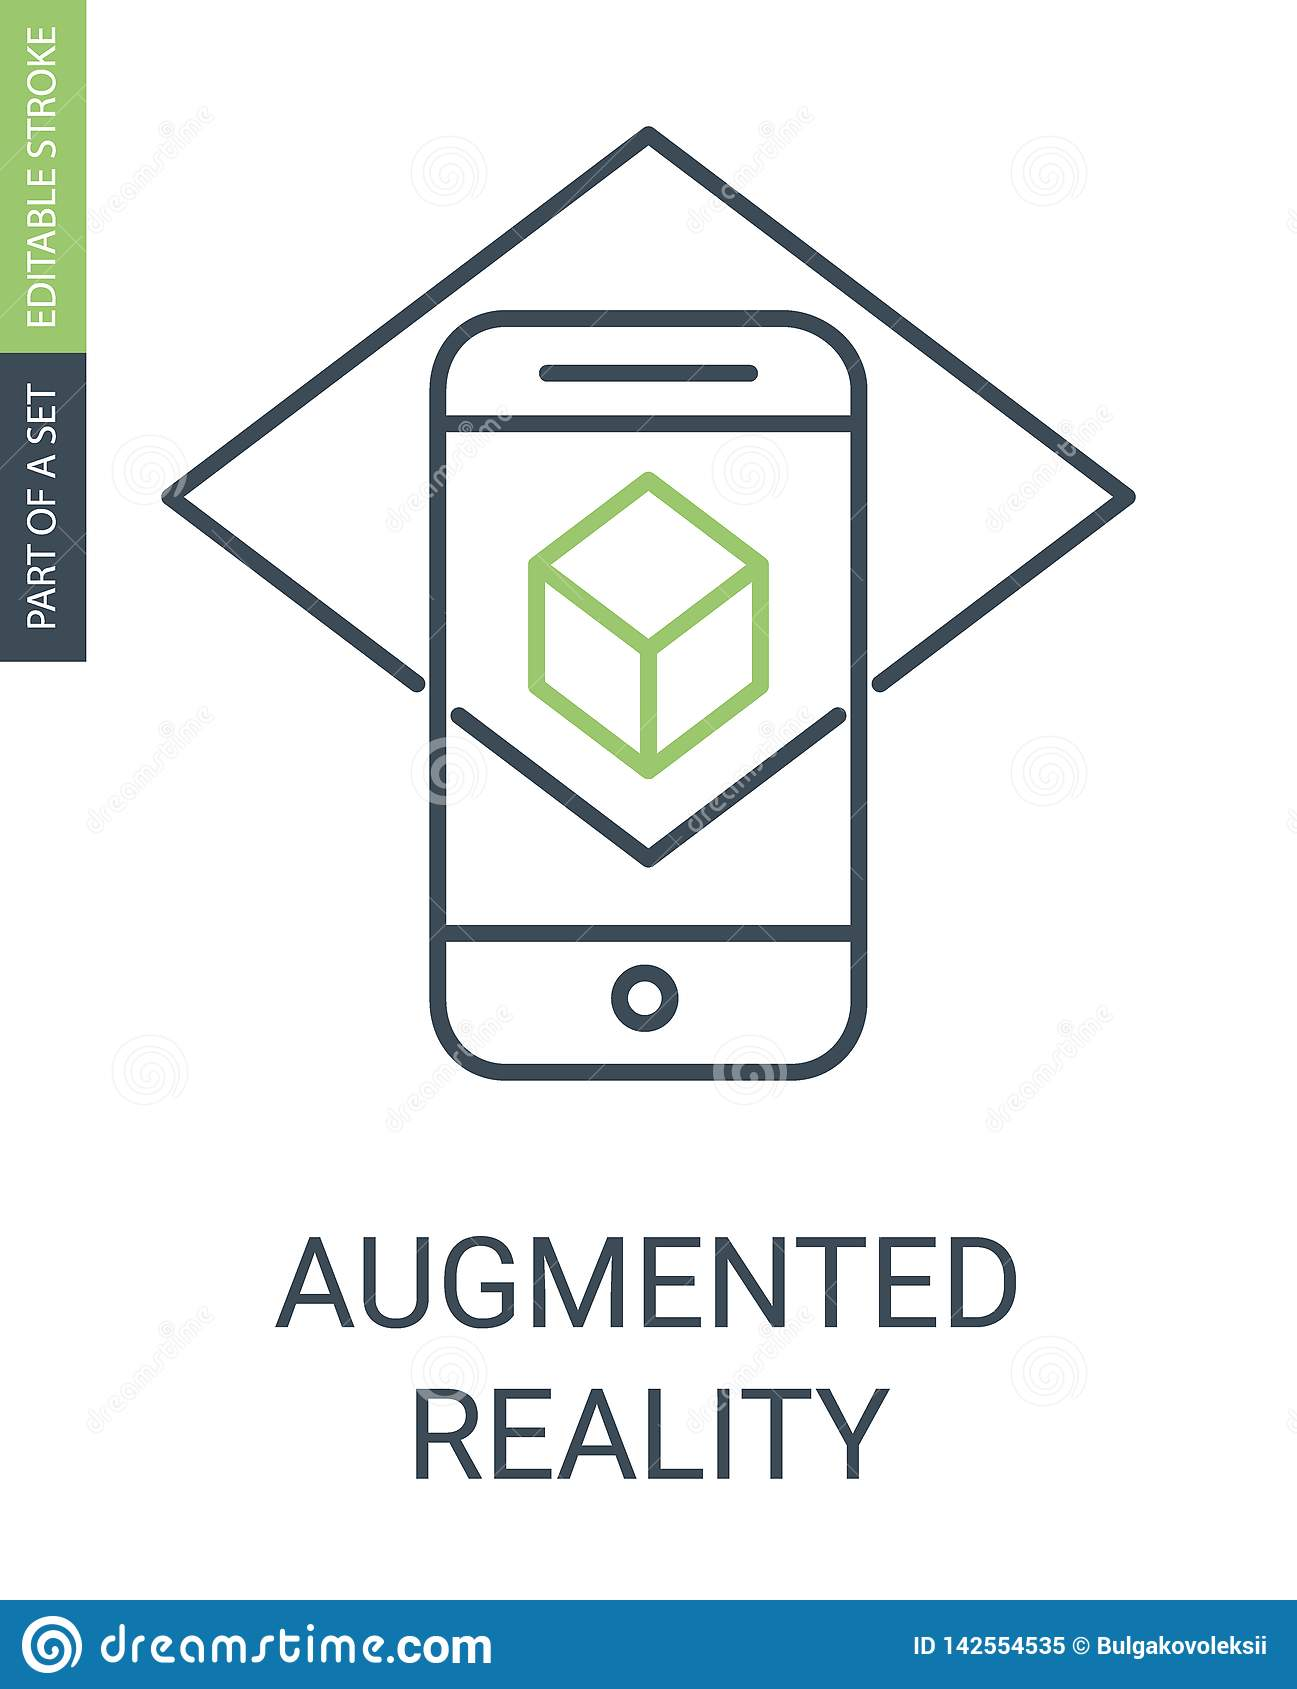 Augmented Reality Outline Icon with Editable Stroke